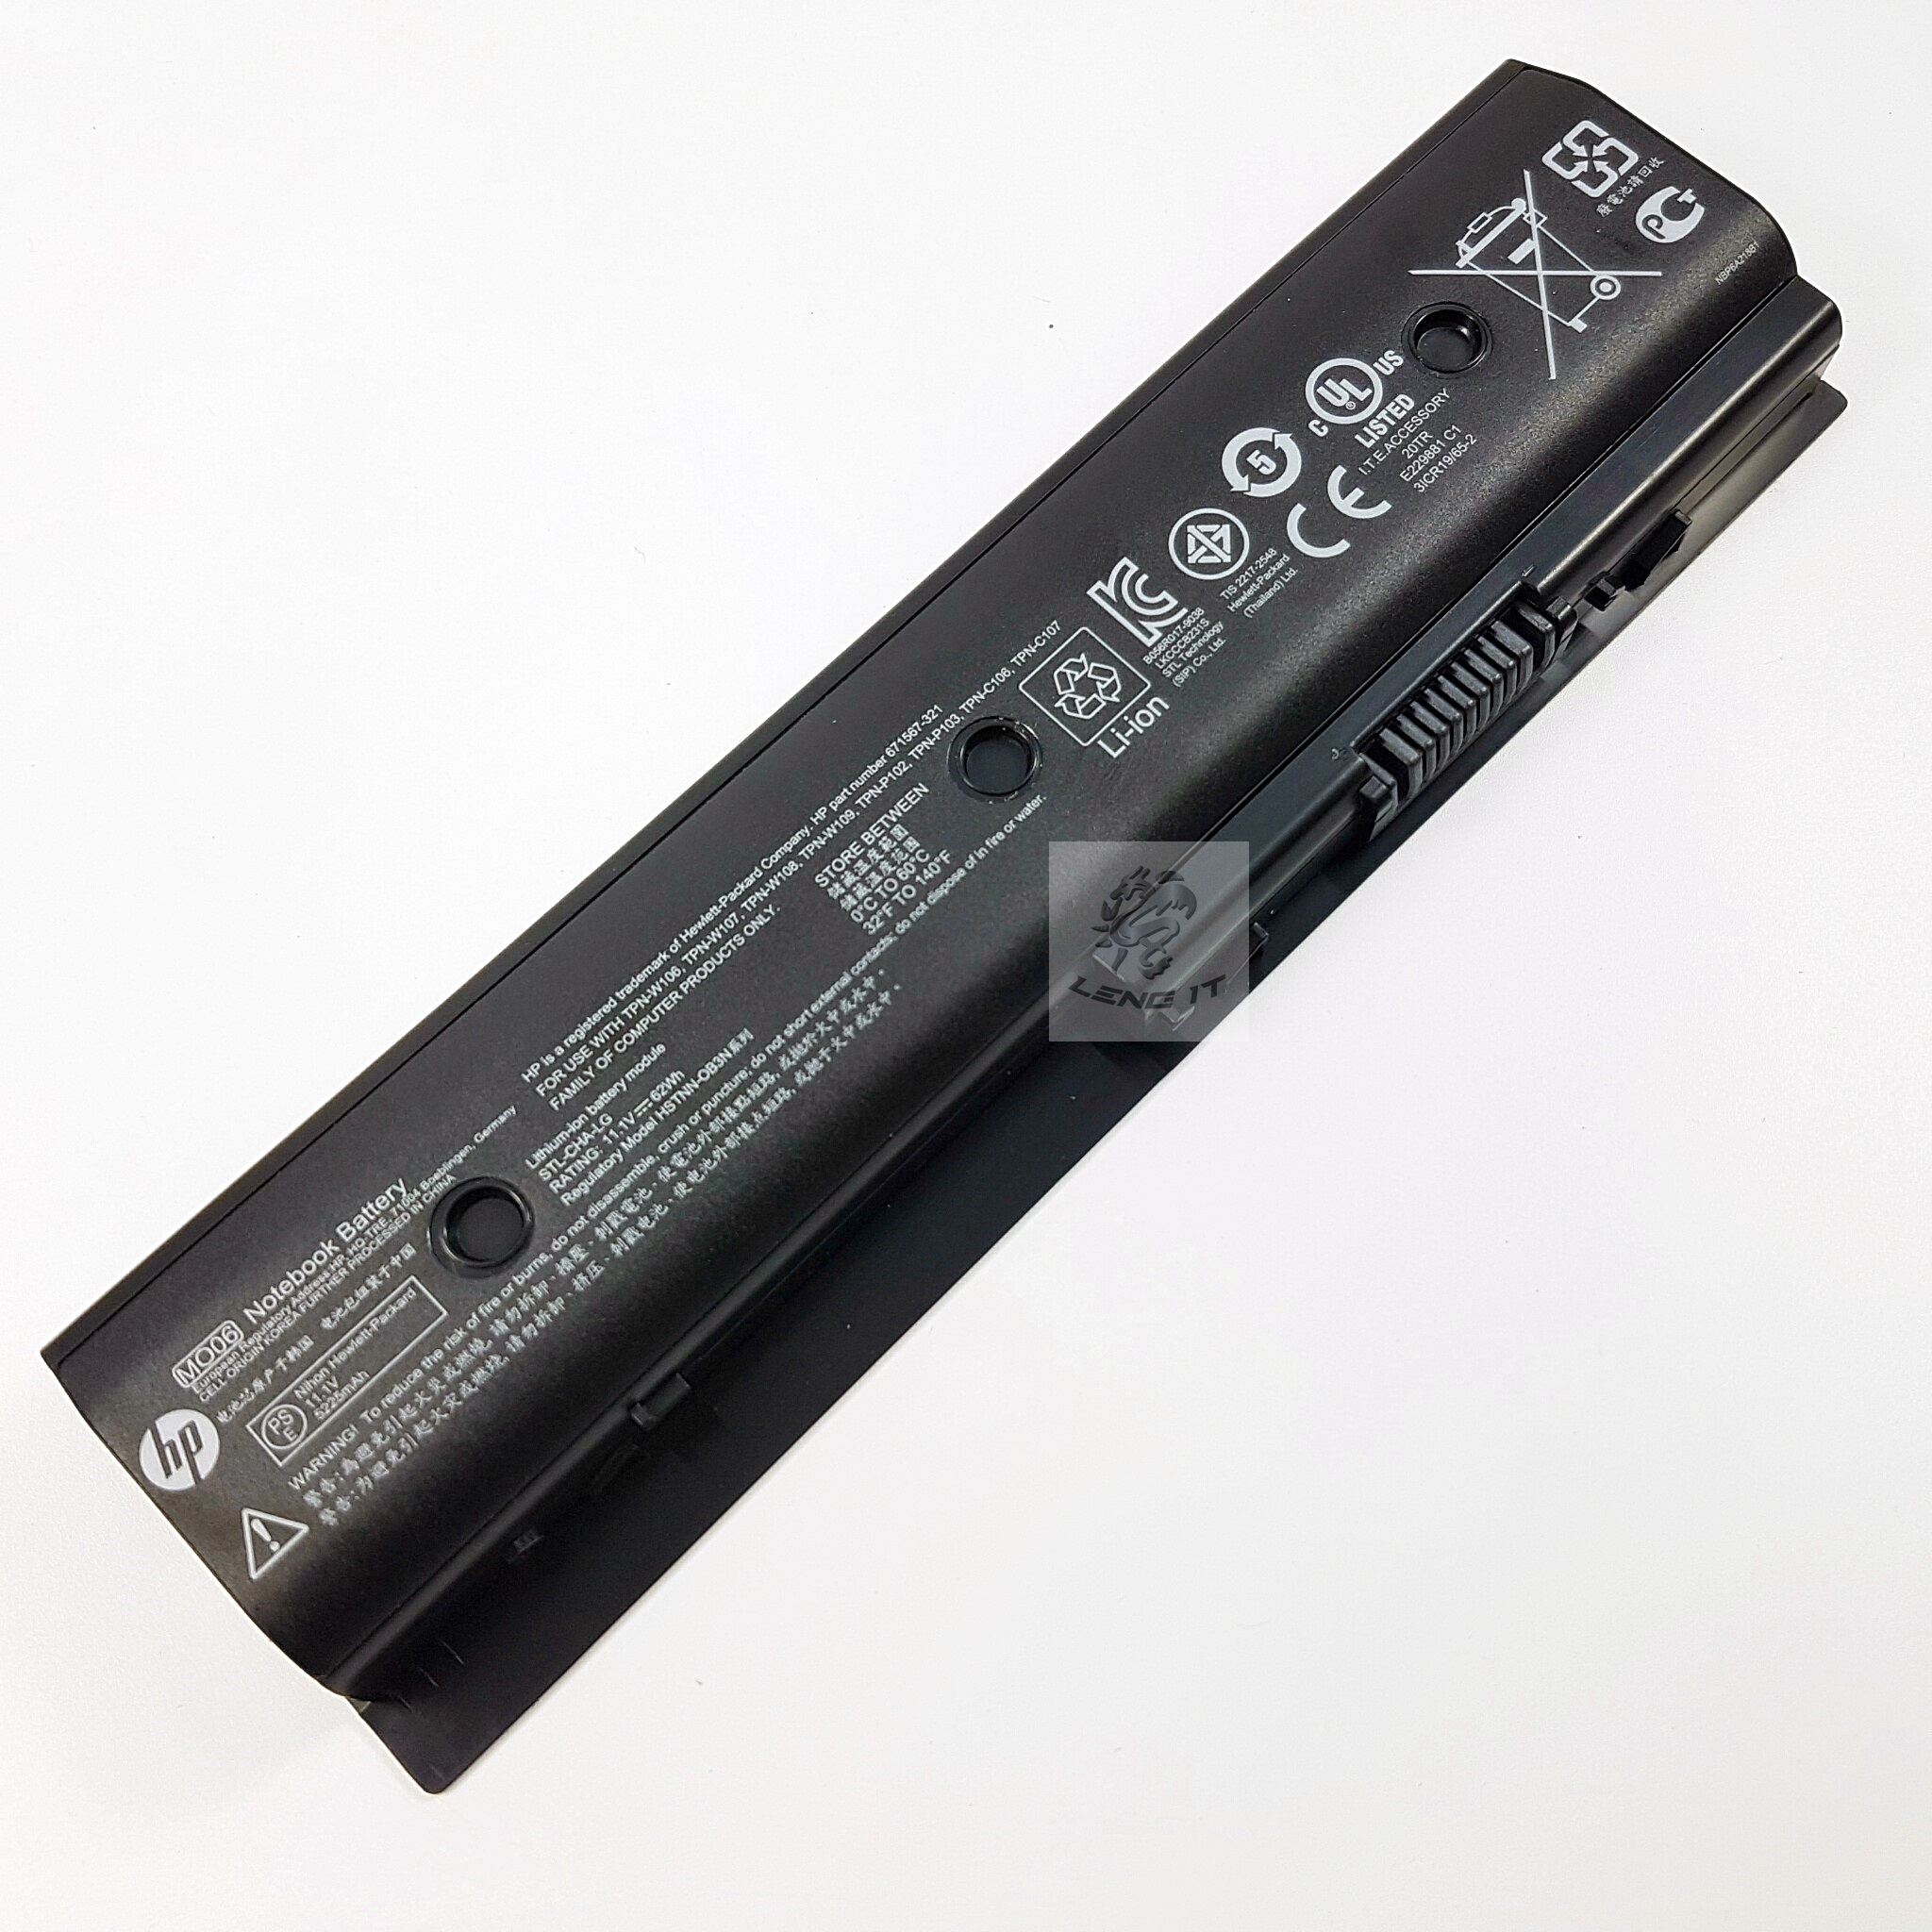 ิBATTERY FOR HP 15